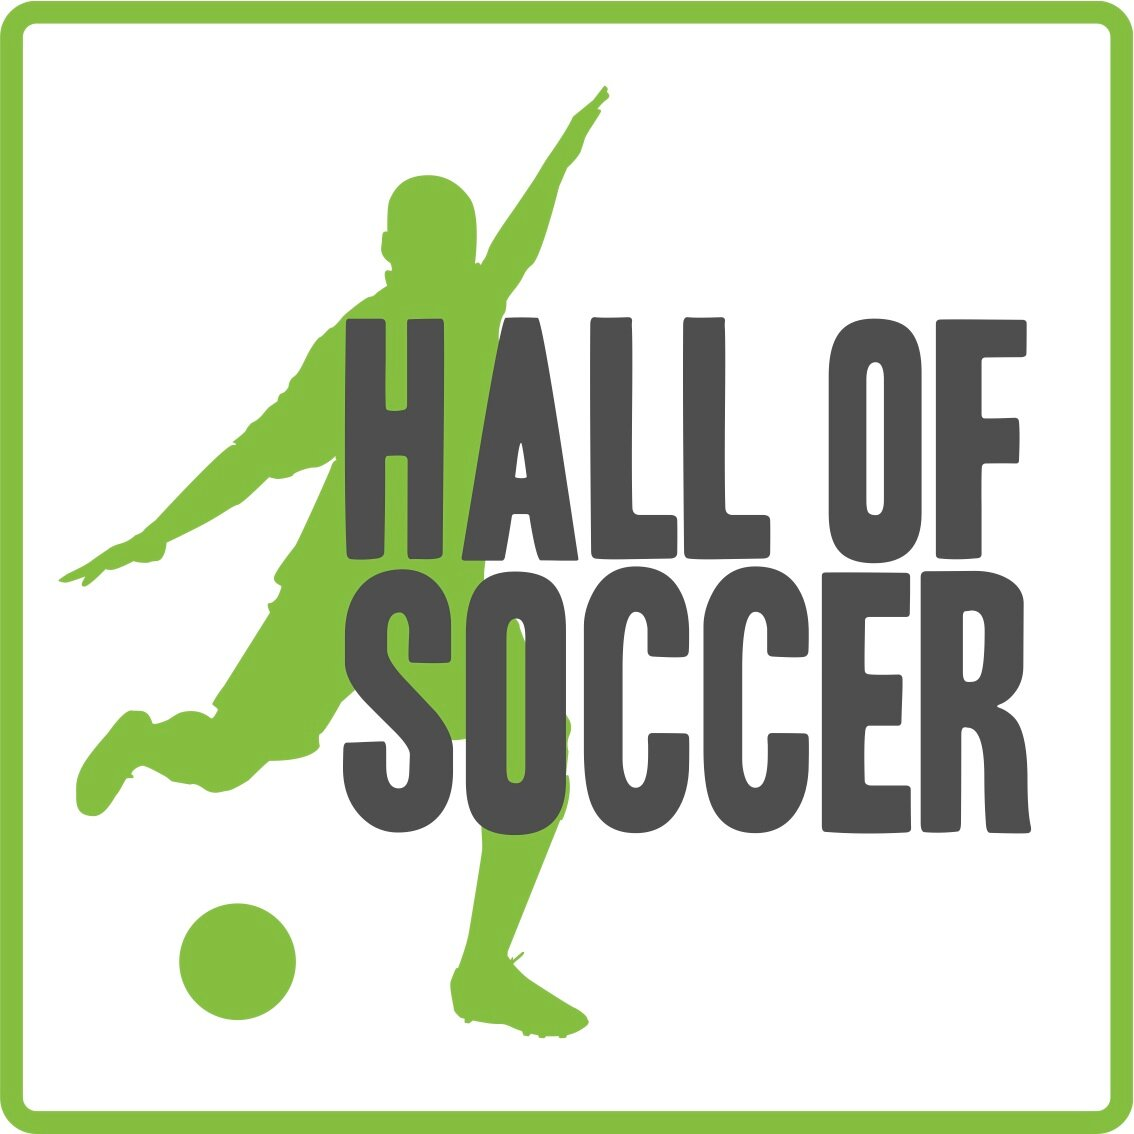 SQ Talents Hall of Soccer Bonland Standort